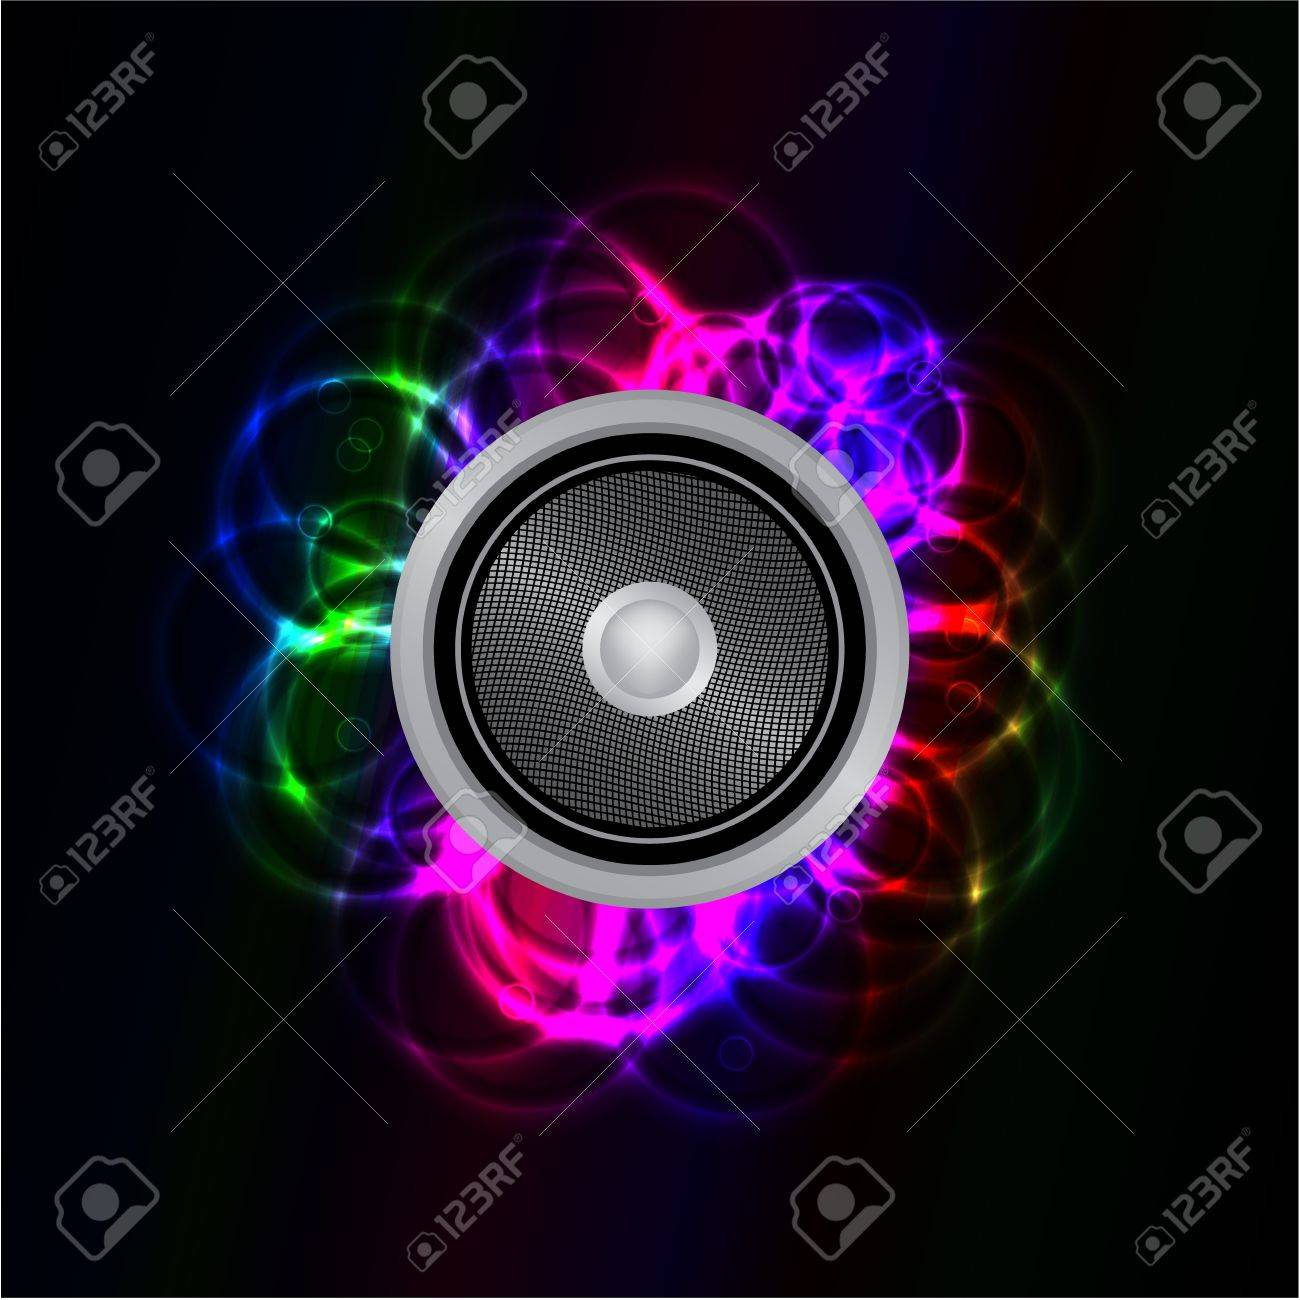 Abstract glowing neon music speaker - 15555490